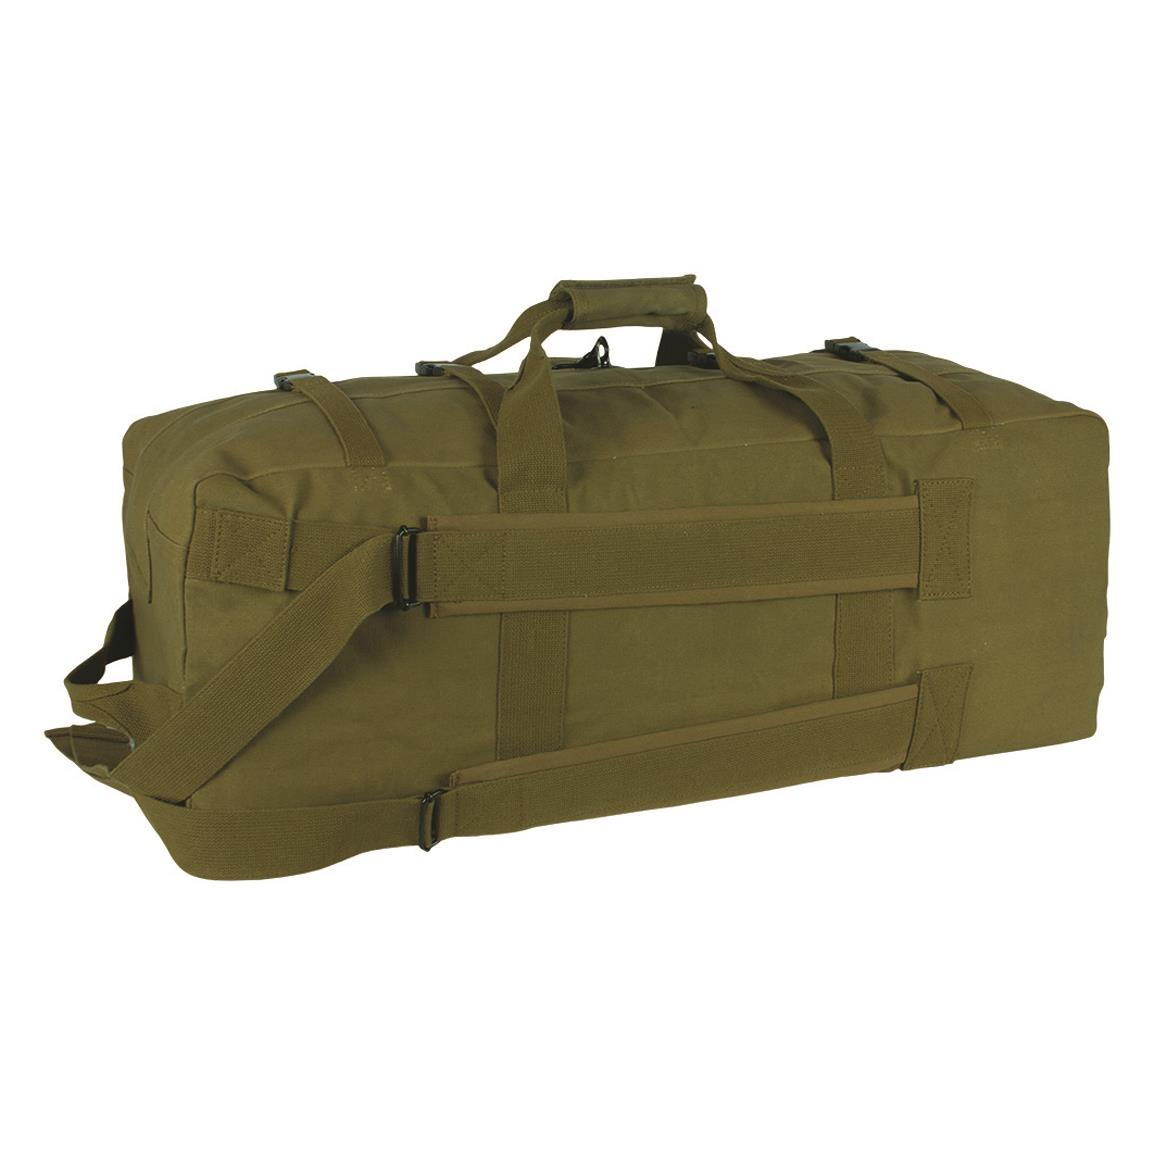 Fox Outdoor Military-Style Gen II Two-Strap Duffel Bag, Olive Drab